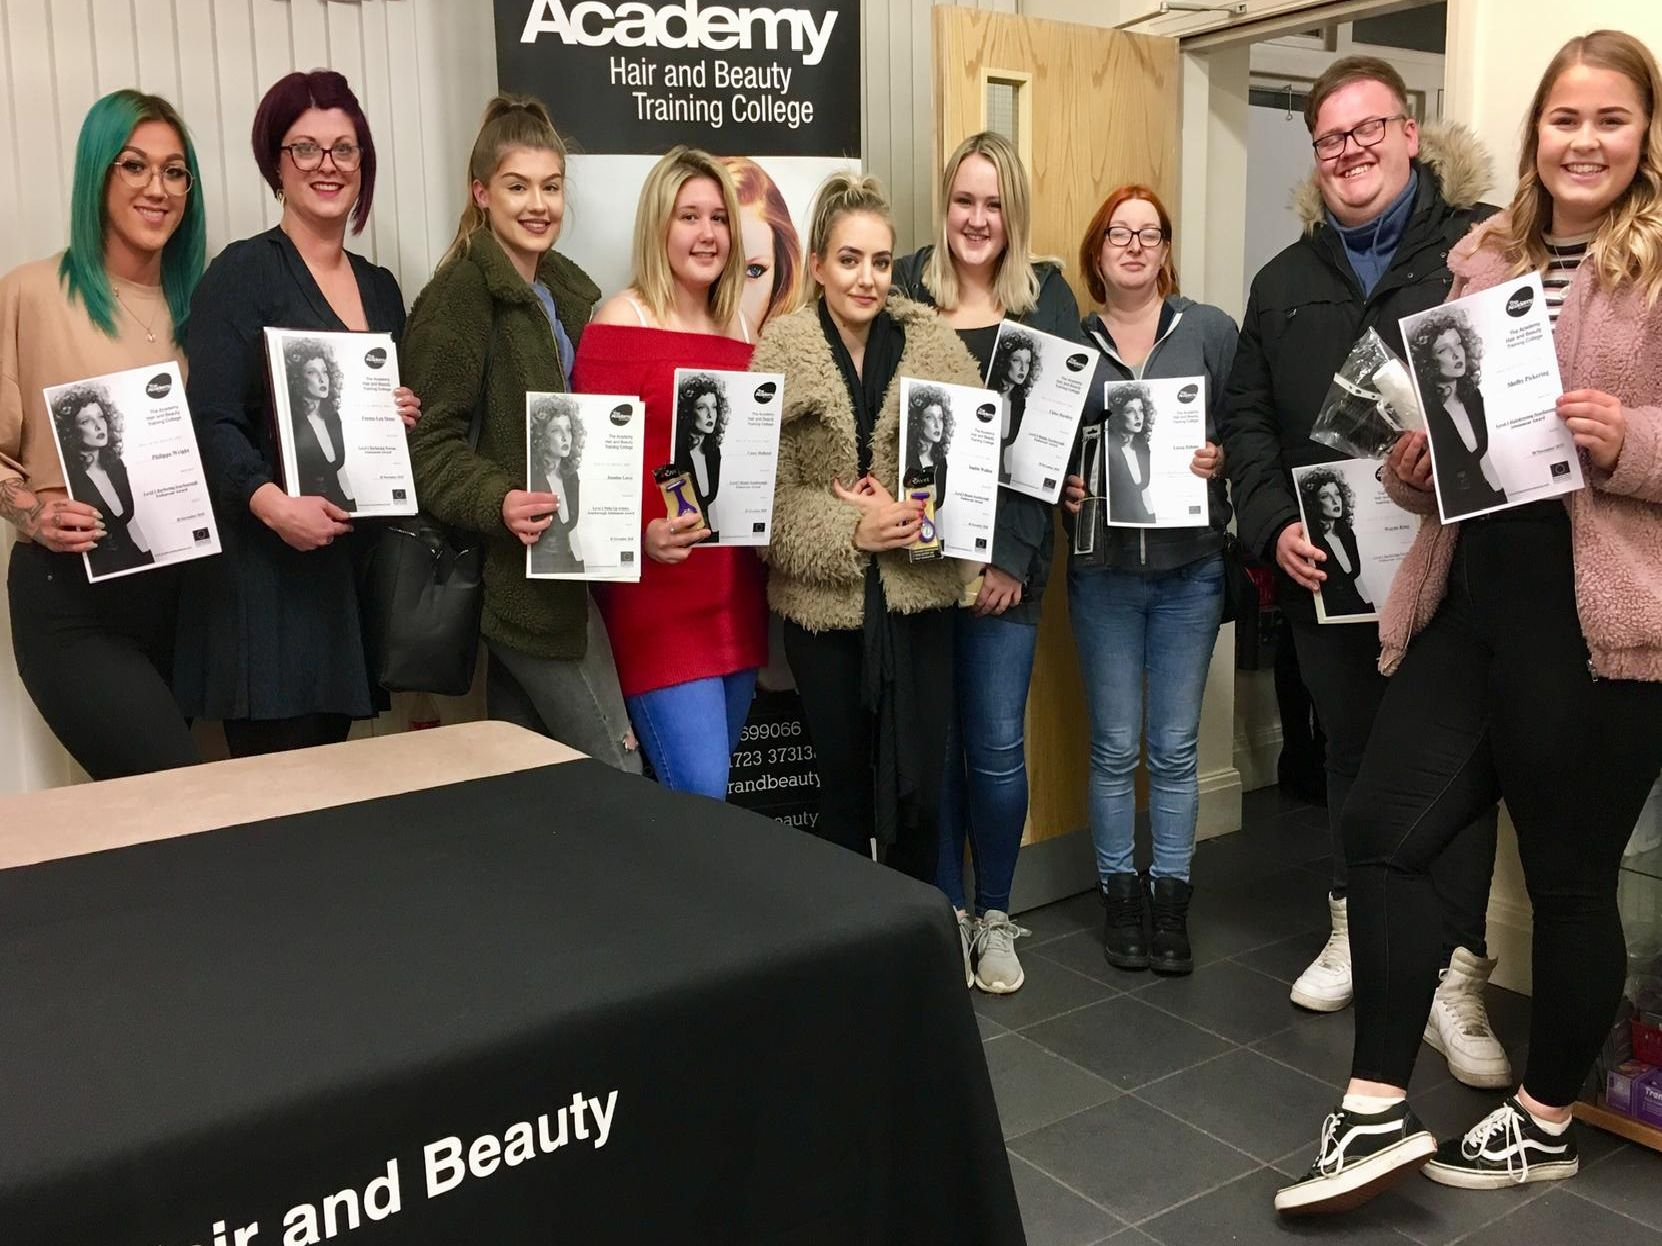 Endeavour and Attainment Awards - Philippa Wright, Emma Lea Stone, Jasmine Lacey, Casey Holland, Sophie Walton, Chloe Hardisty, Emma Dobson, Wayne King, Shelby Pickering.